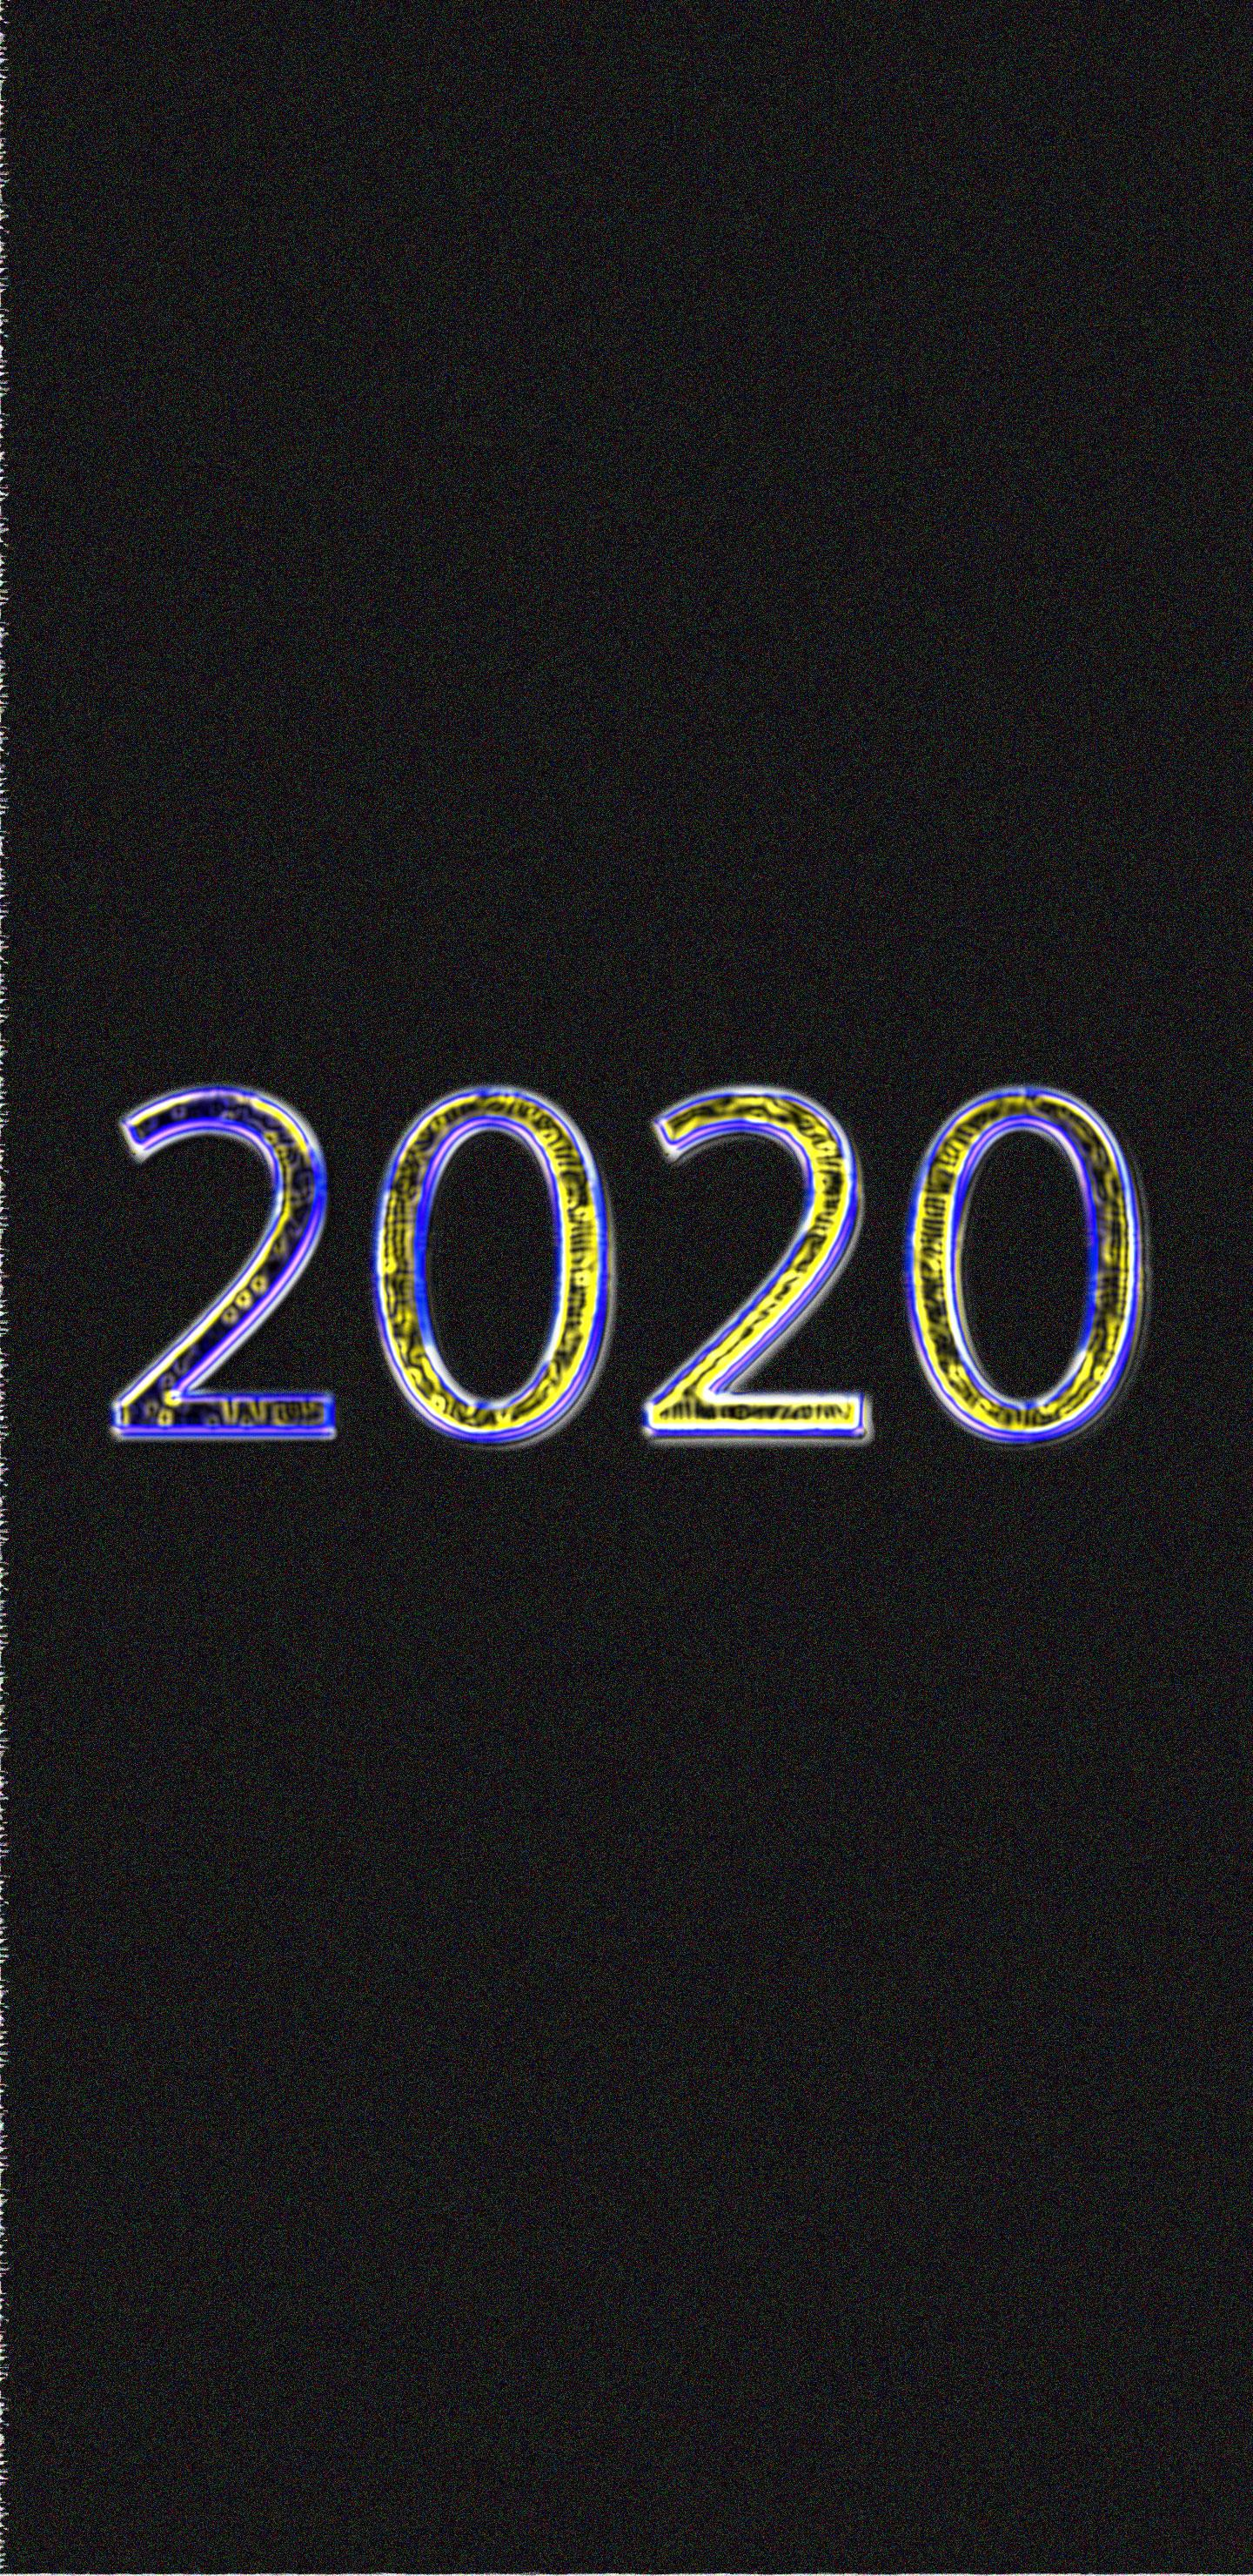 2020 Phone Wallpapers   Top 2020 Phone Backgrounds 1440x2960